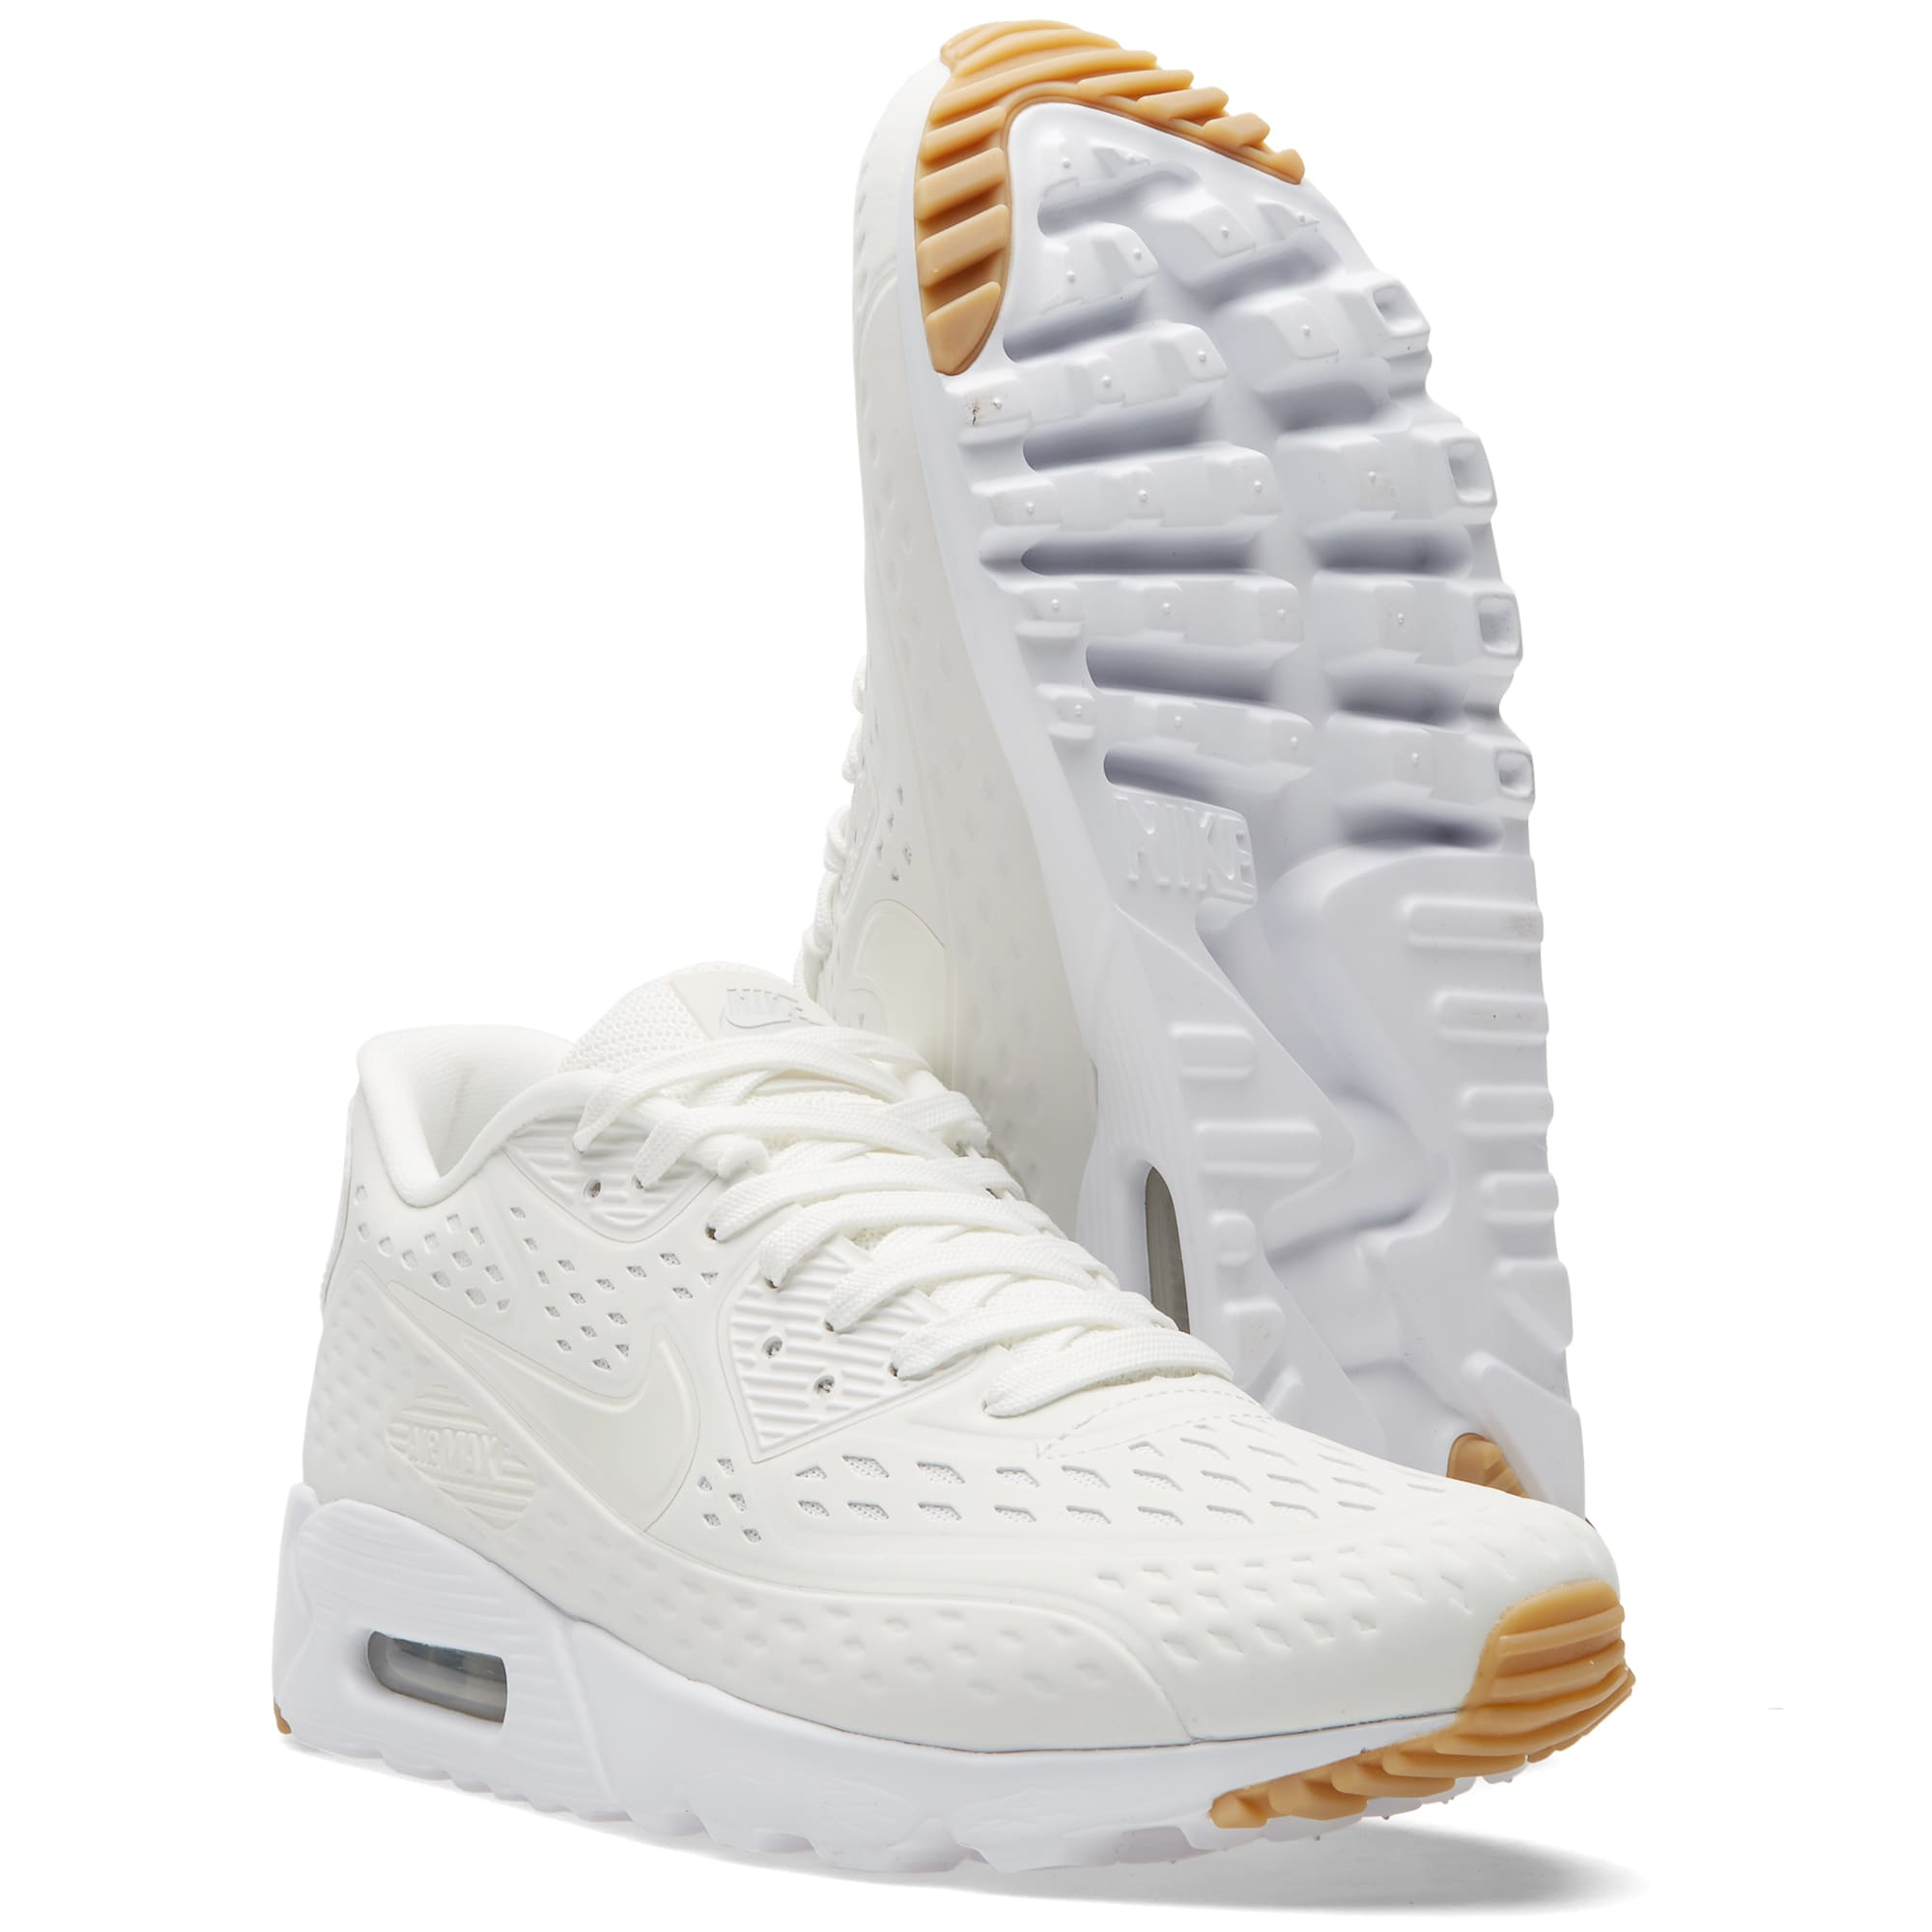 nike air max 90 ultra br pure platinum,nike air max 90 ultra